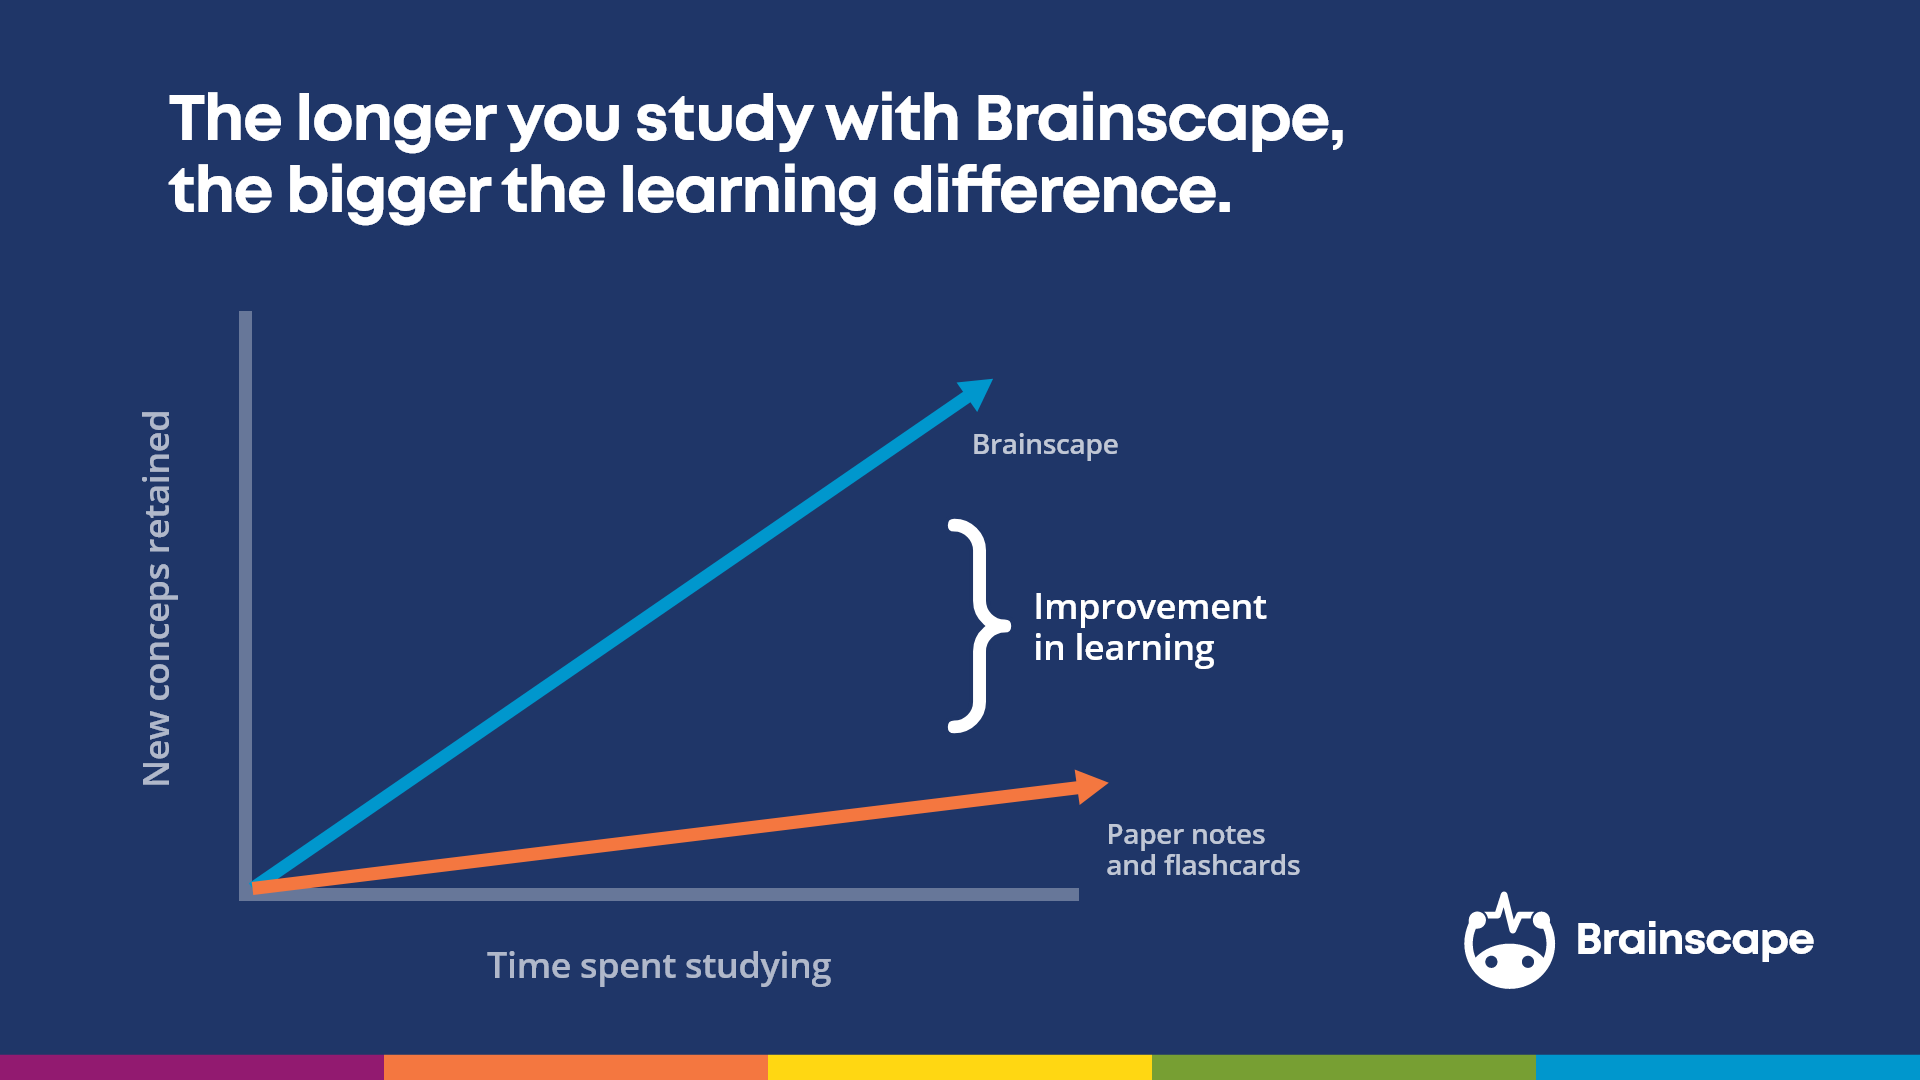 Memory retention over time with Brainscape